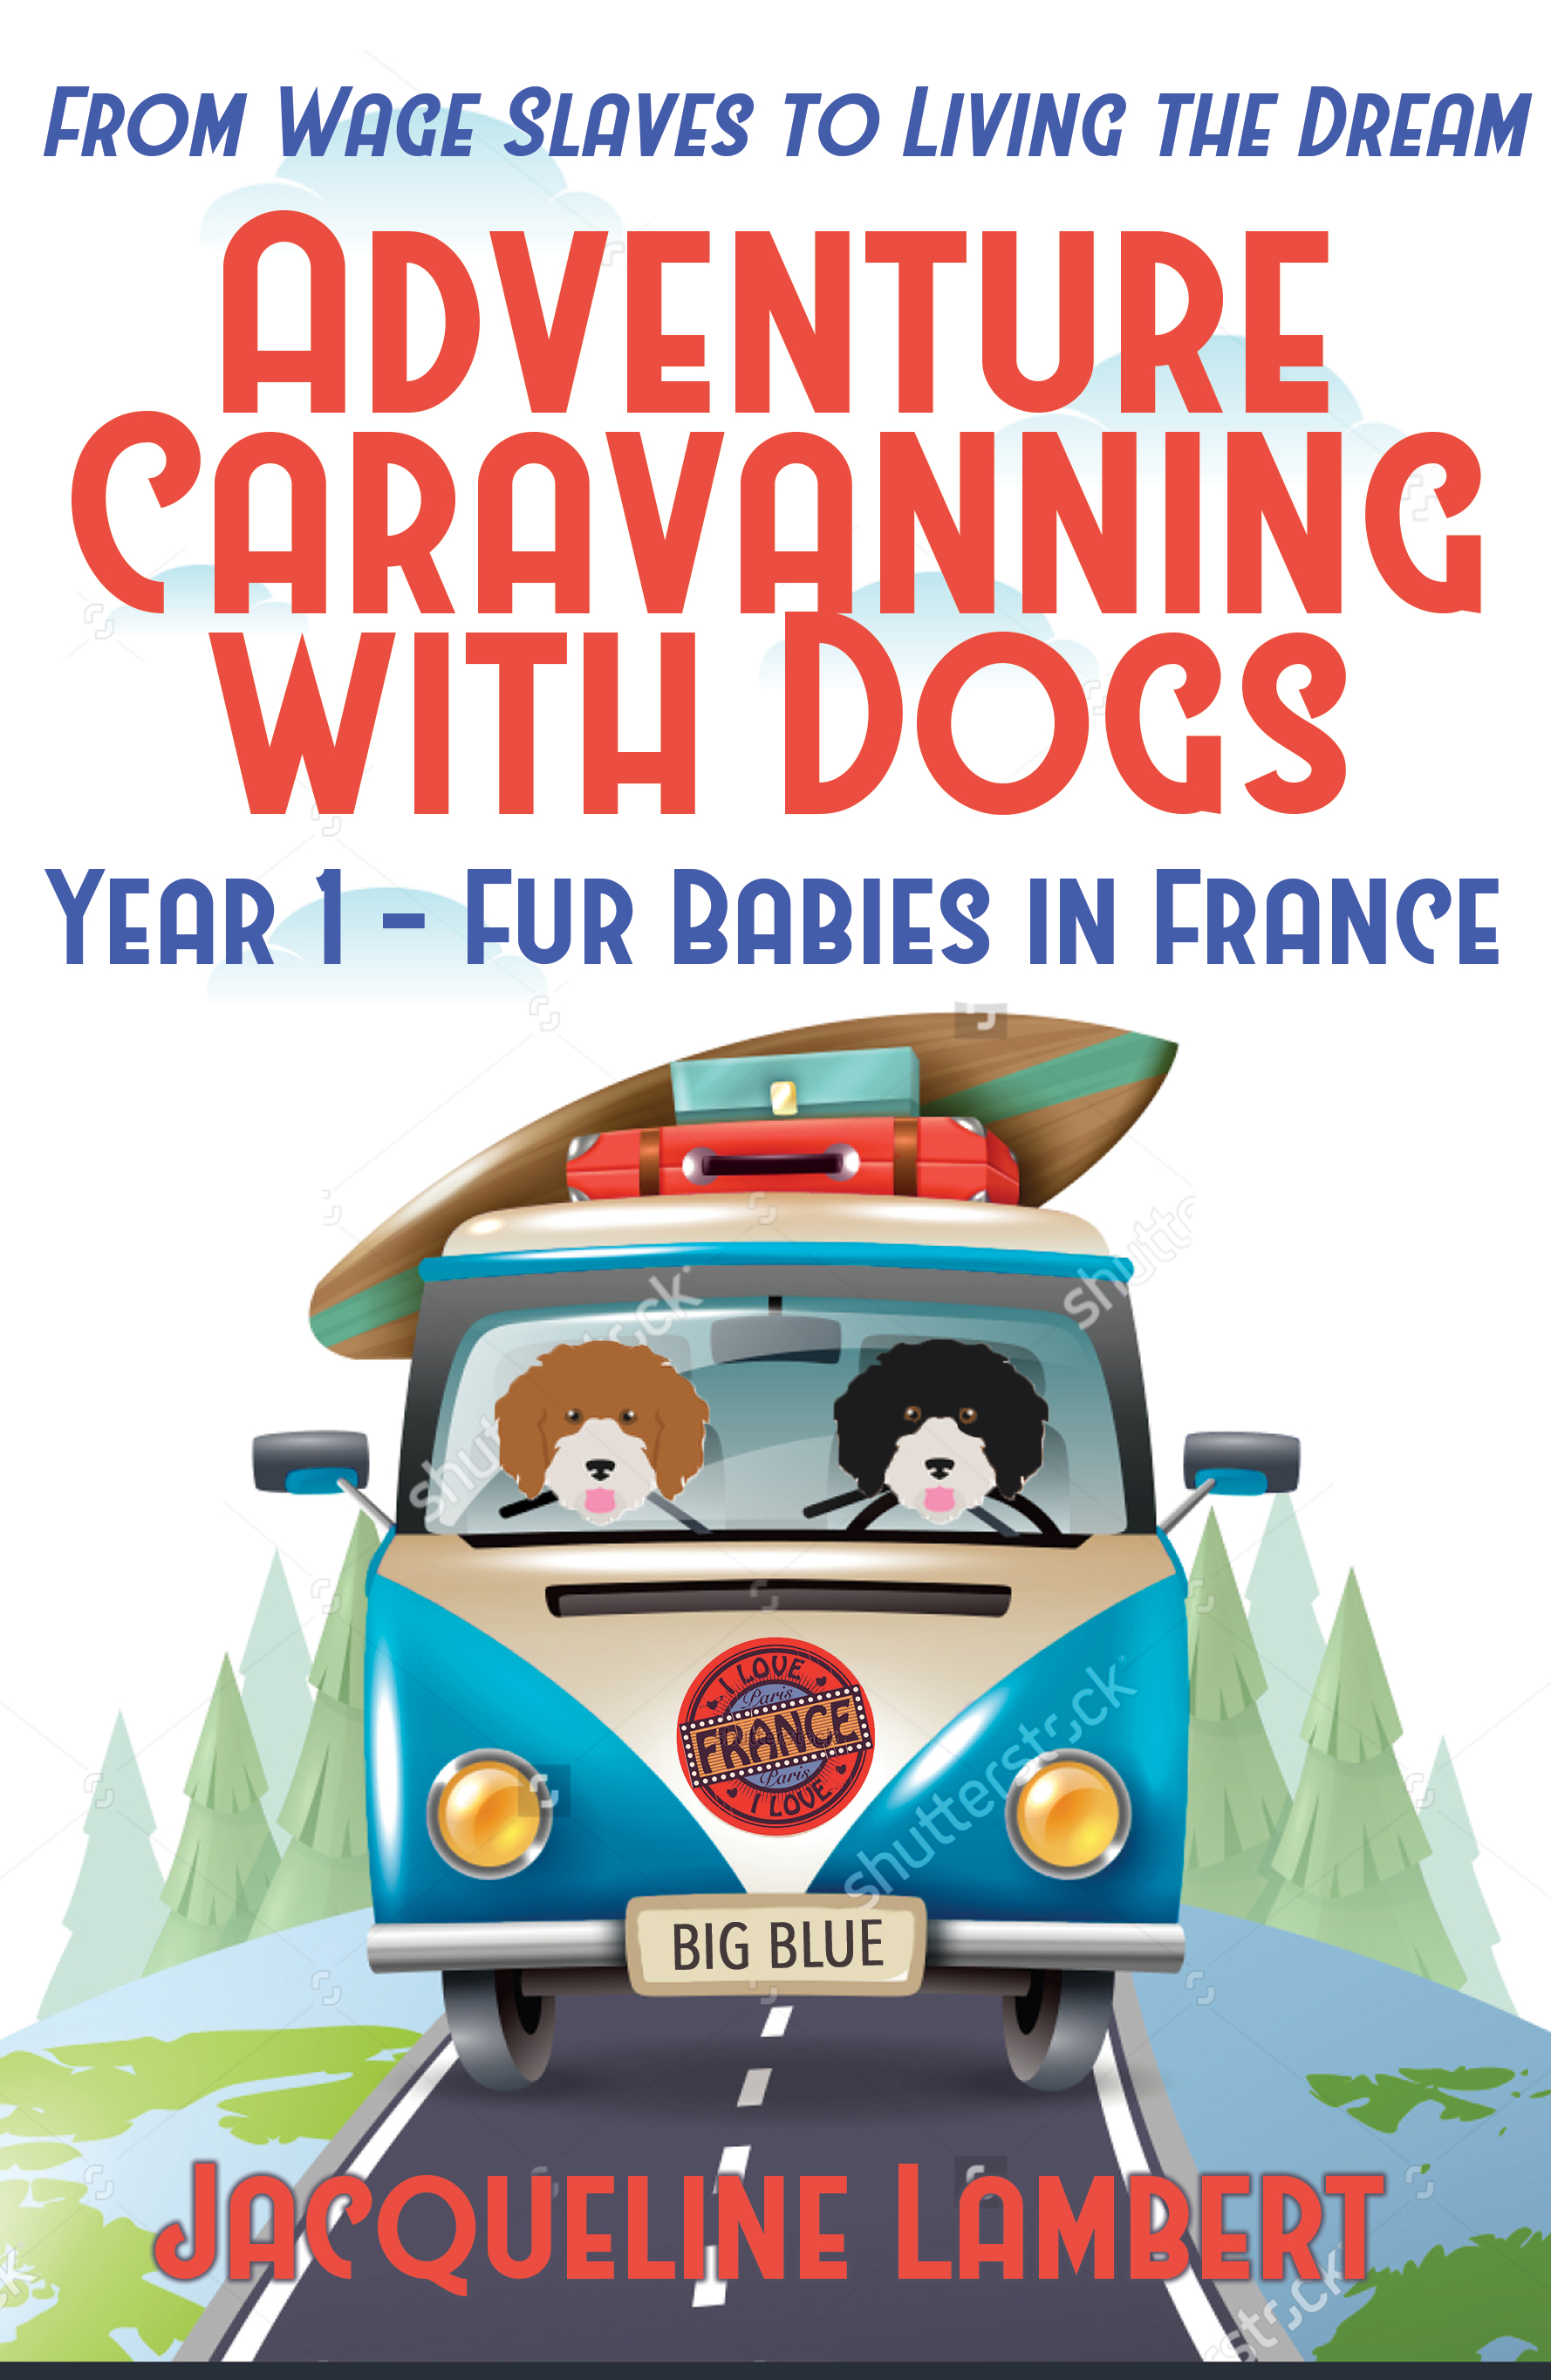 Jacqueline_Lambert_Book_Adventure_Caravanning_with_Dogs